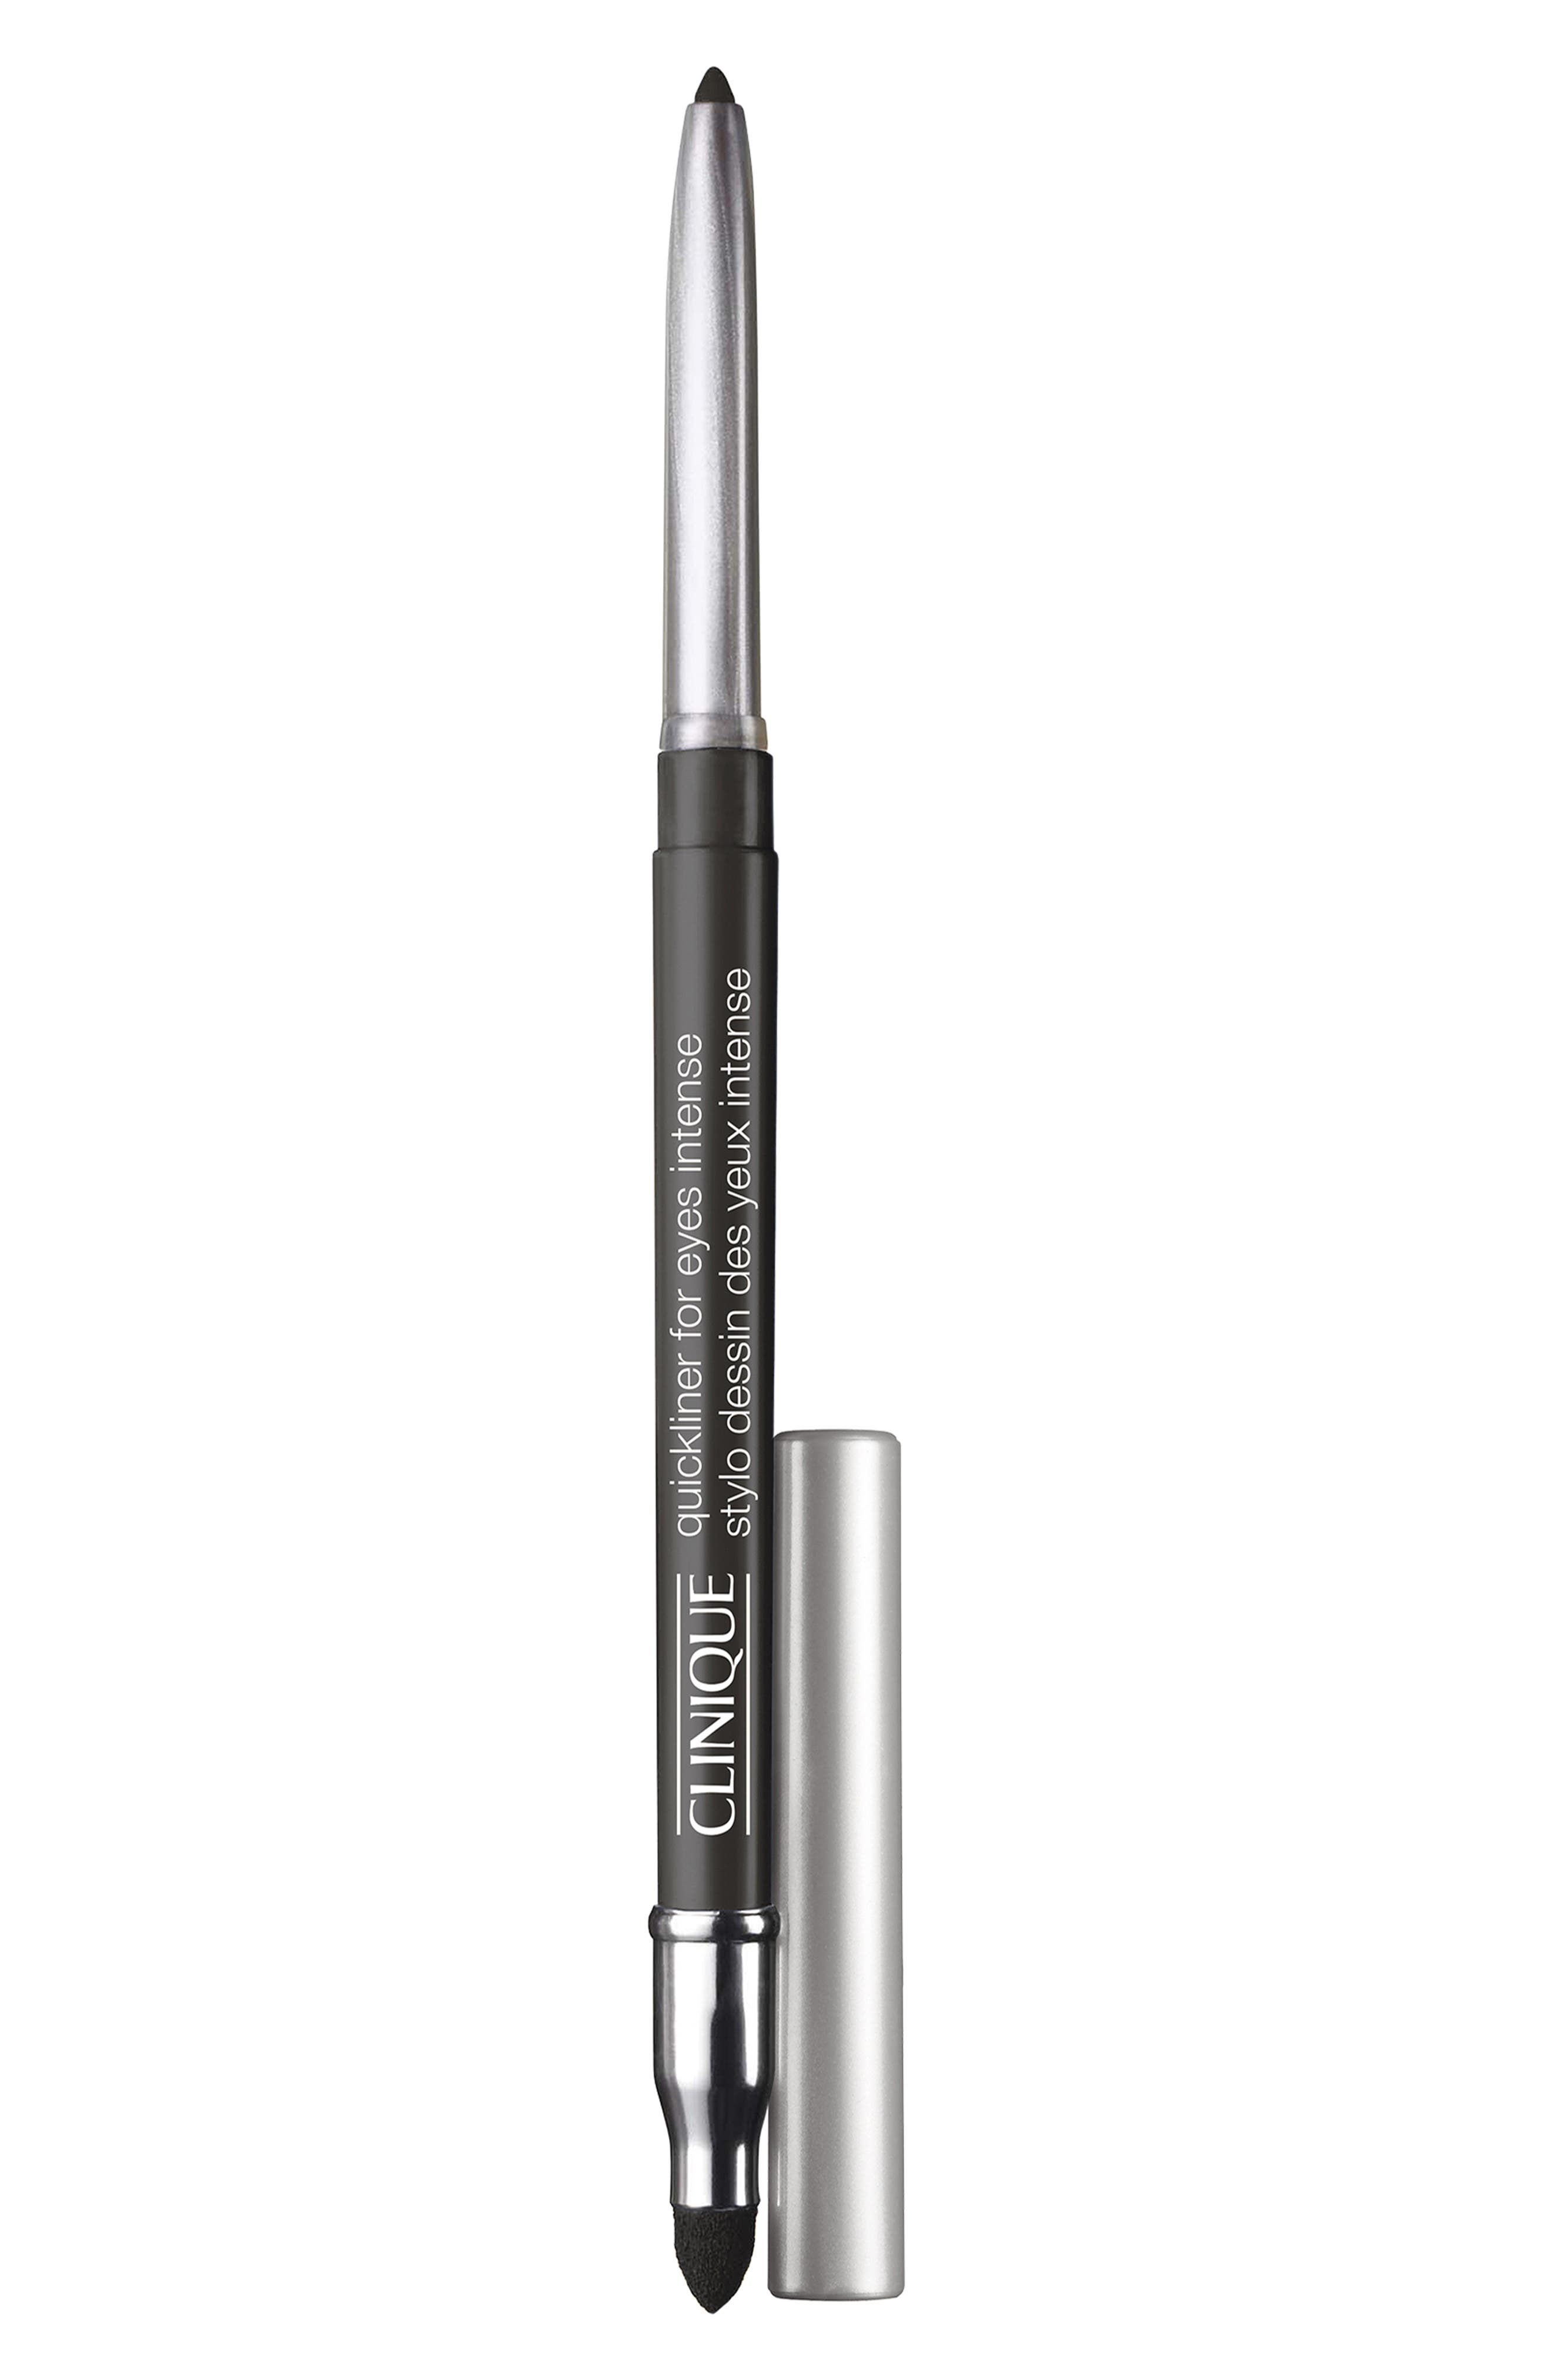 Quickliner for Eyes Intense Eyeliner Pencil,                             Main thumbnail 1, color,                             INTENSE CHARCOAL